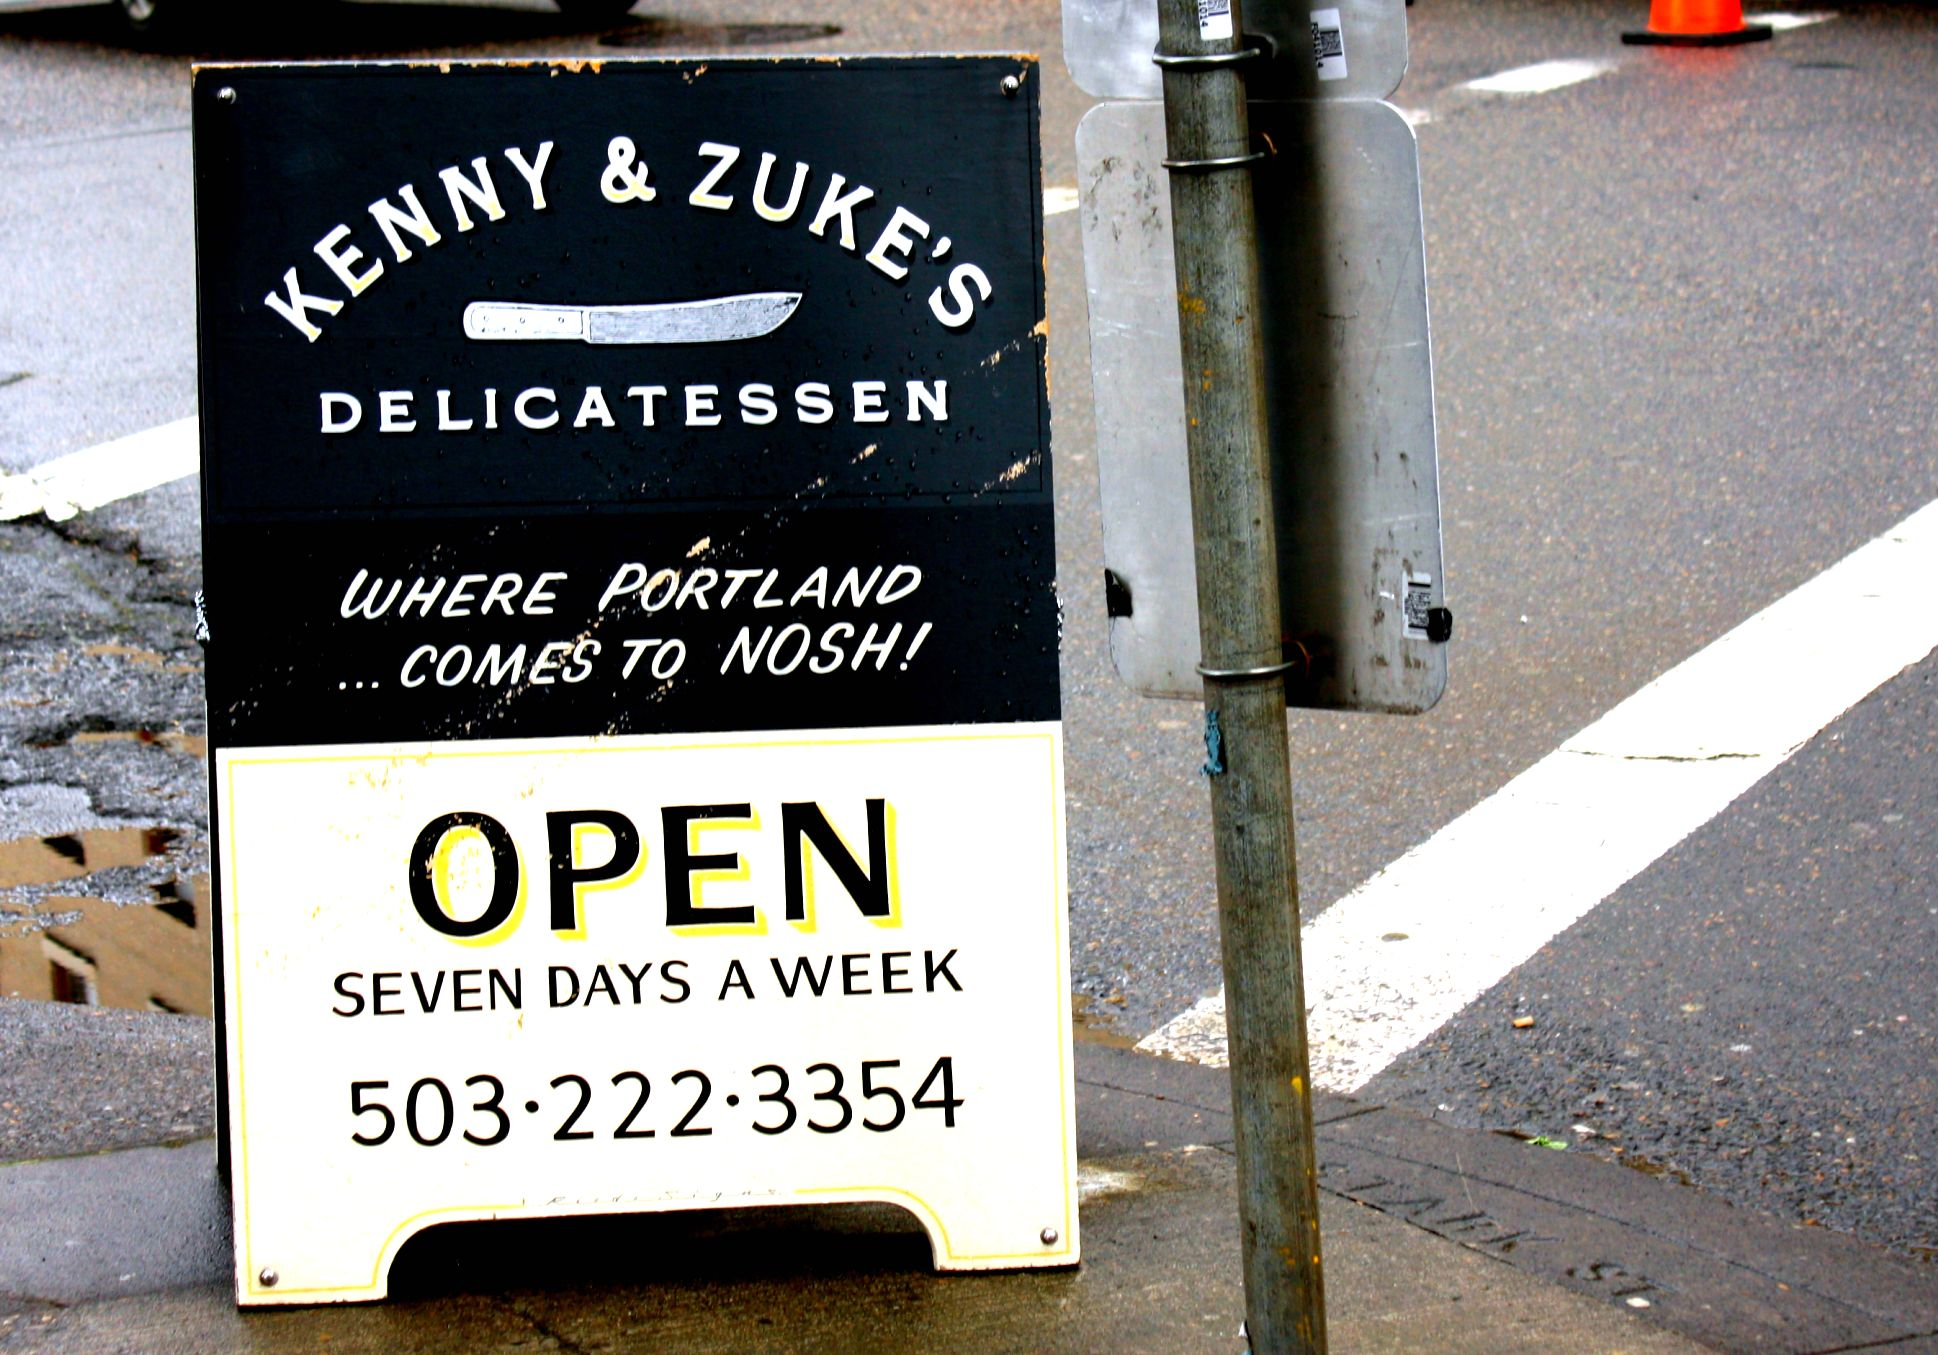 Kenny and Zuke's deli sidewalk sign Portland Oregon